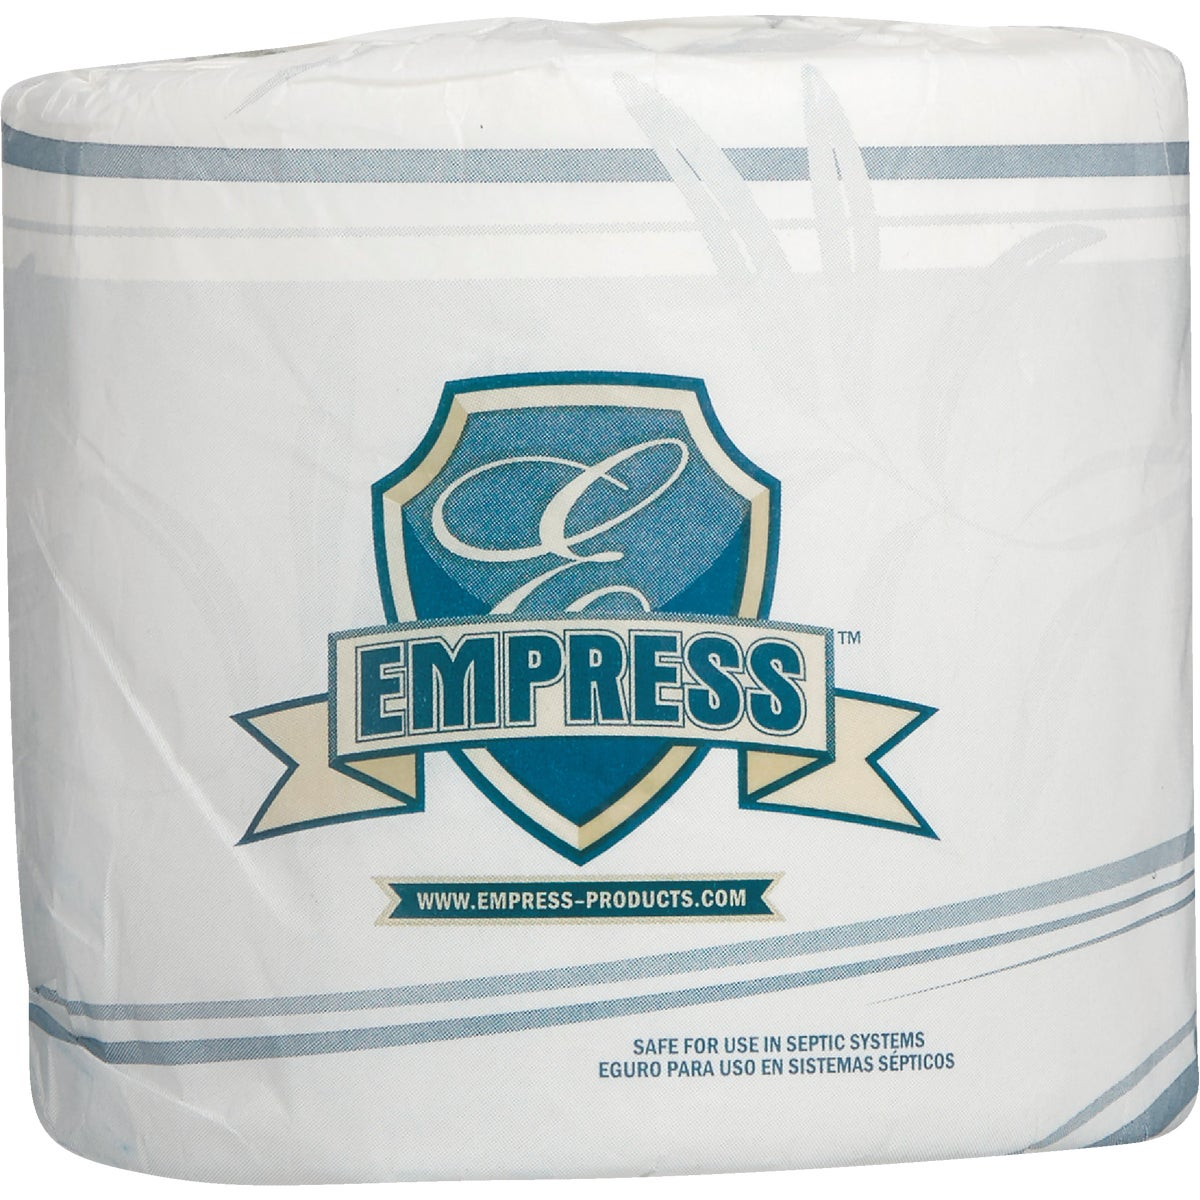 2Ply Wind Toilet Tissue